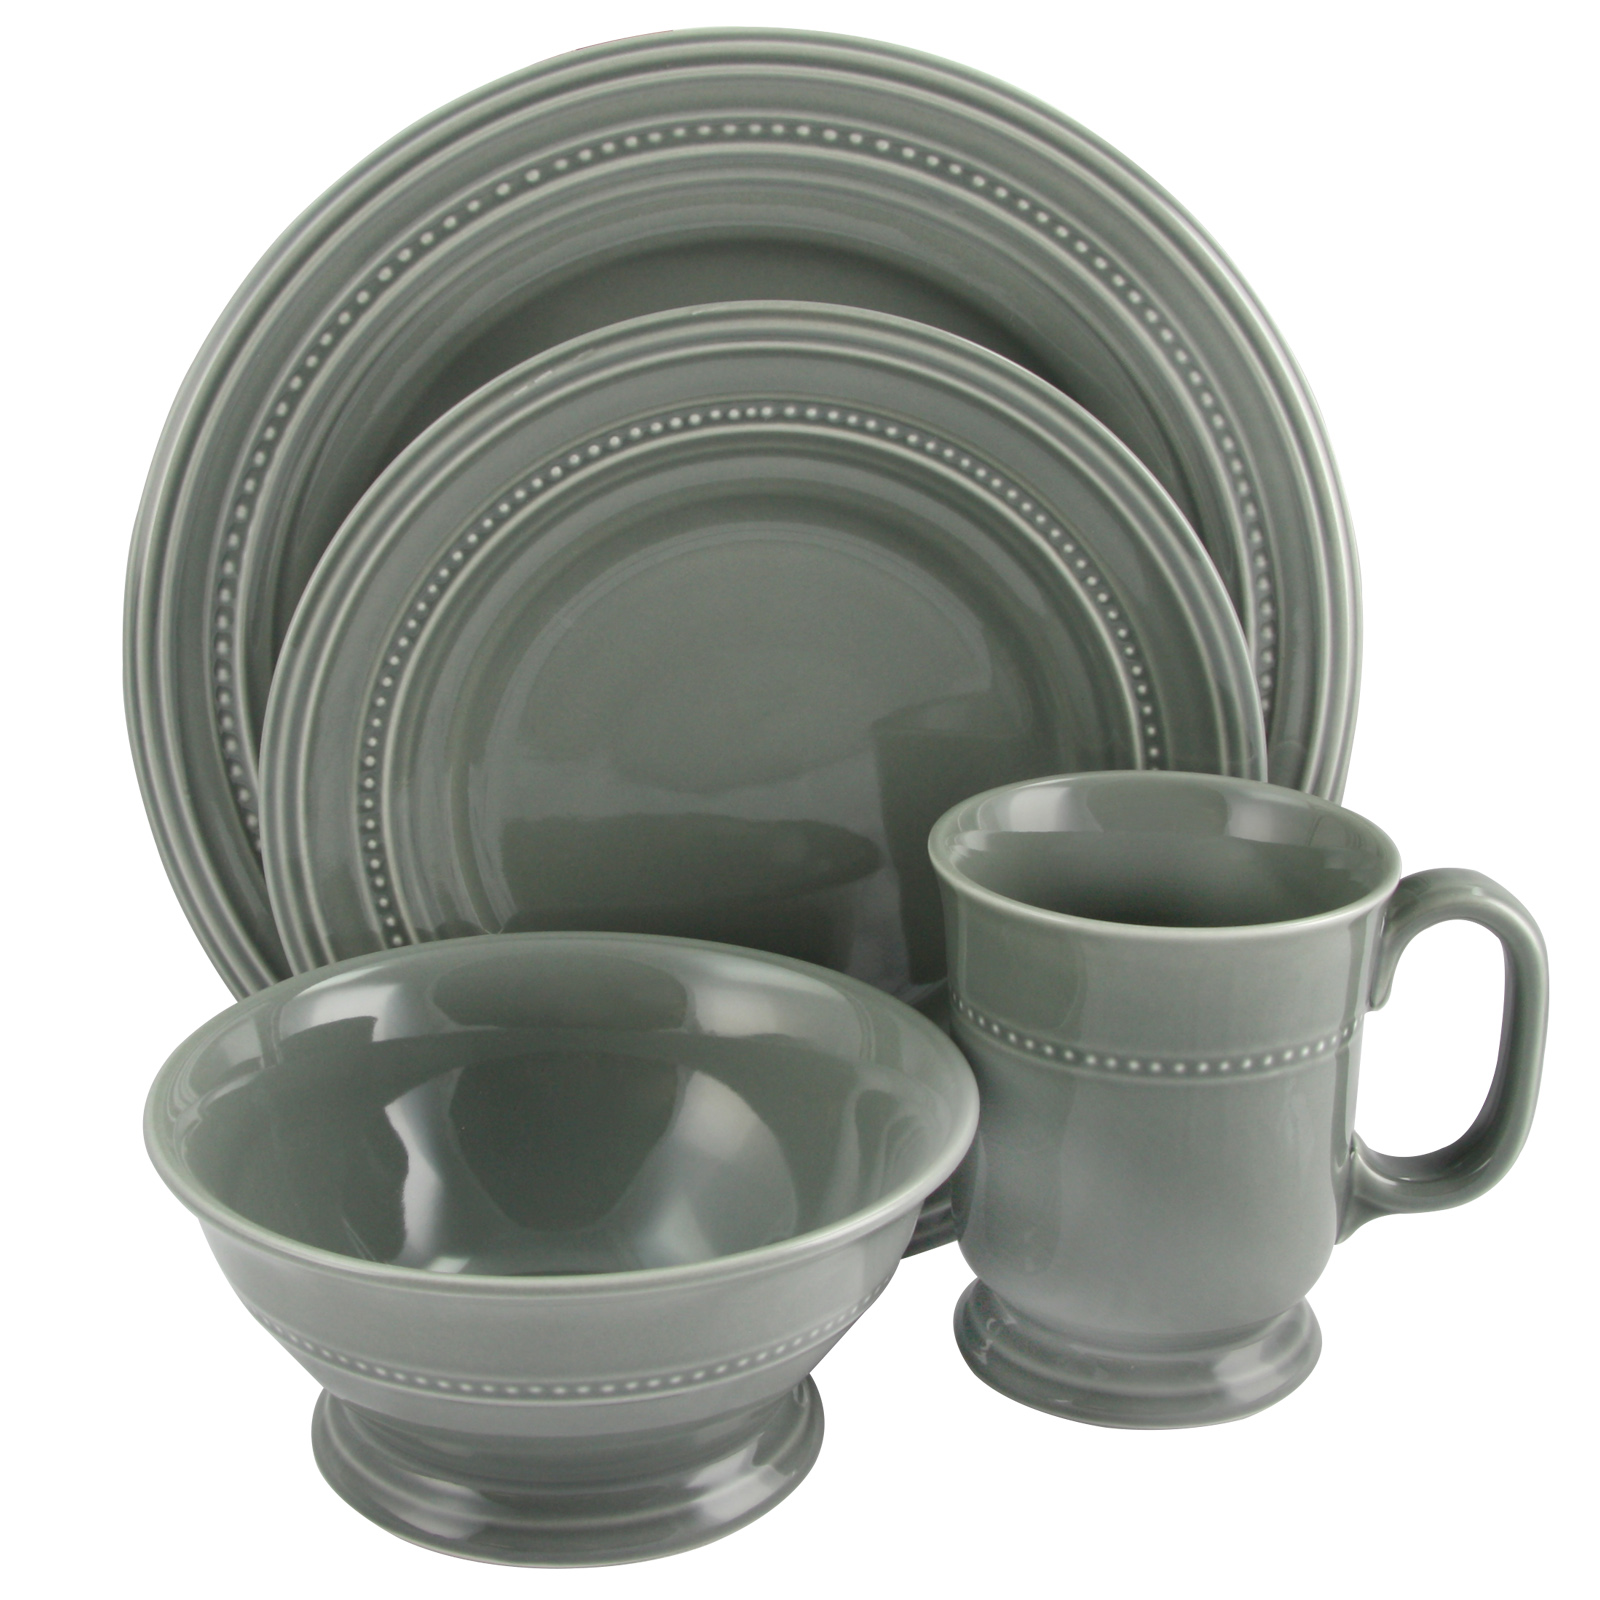 Gibson Barberware 16 Piece Dinnerware Set in Grey  sc 1 st  Walmart & Gray Dinnerware Sets - Walmart.com